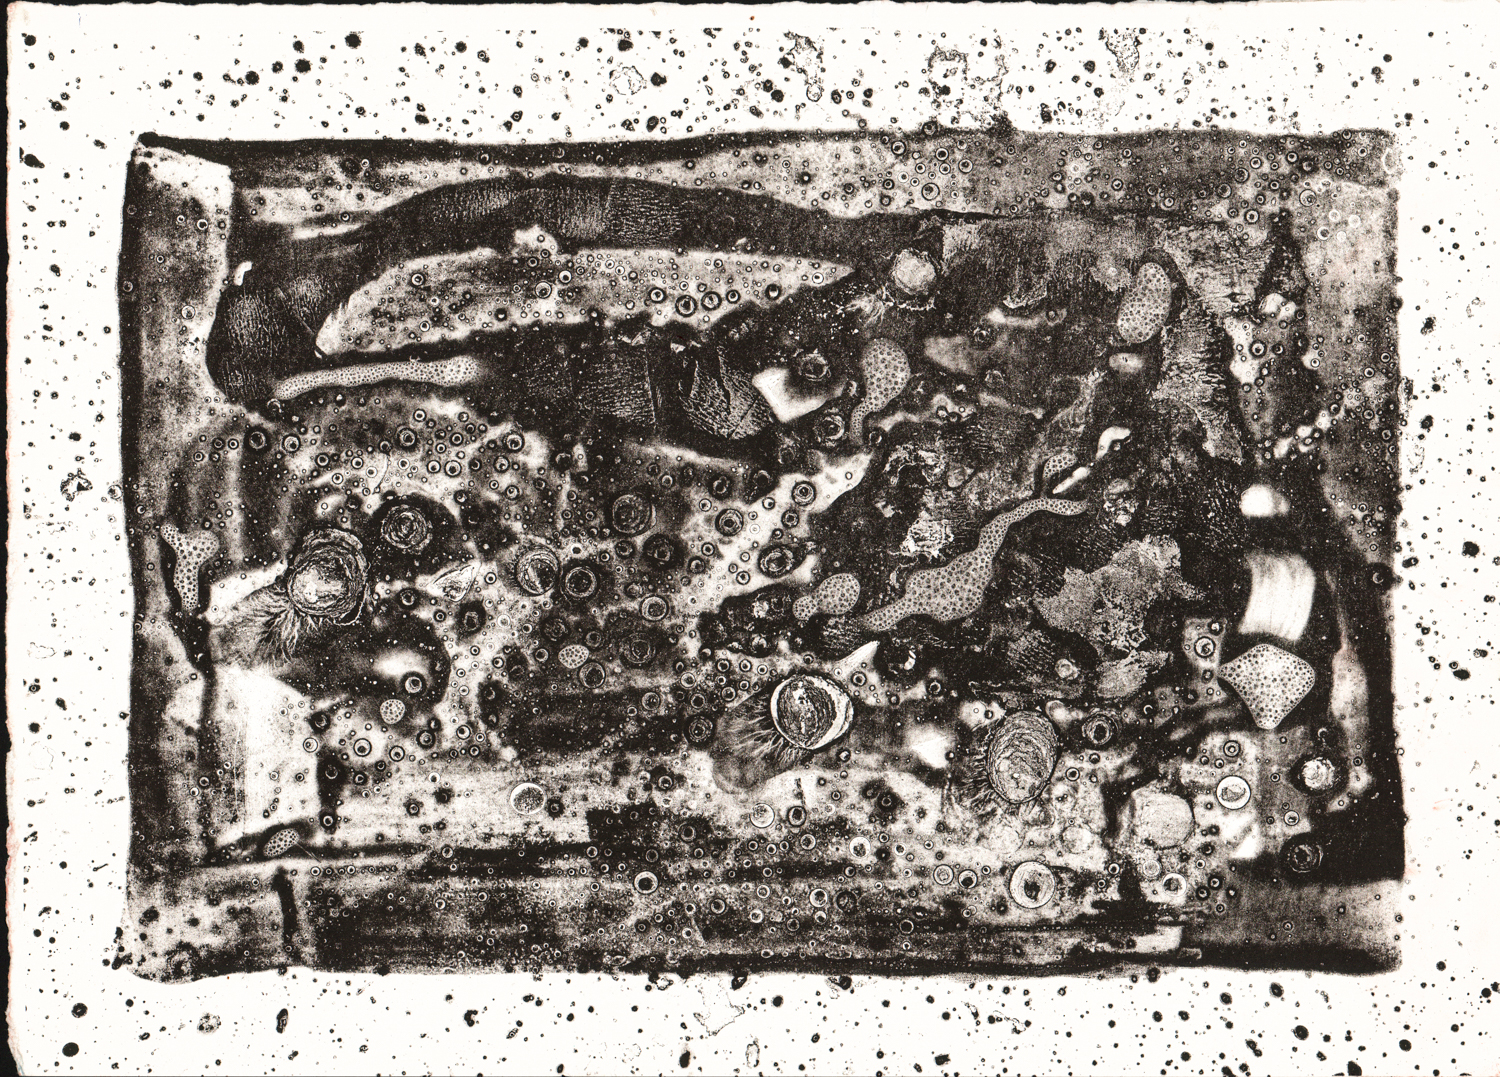 Untitled (Black Abstract) - Lithograph? - 10